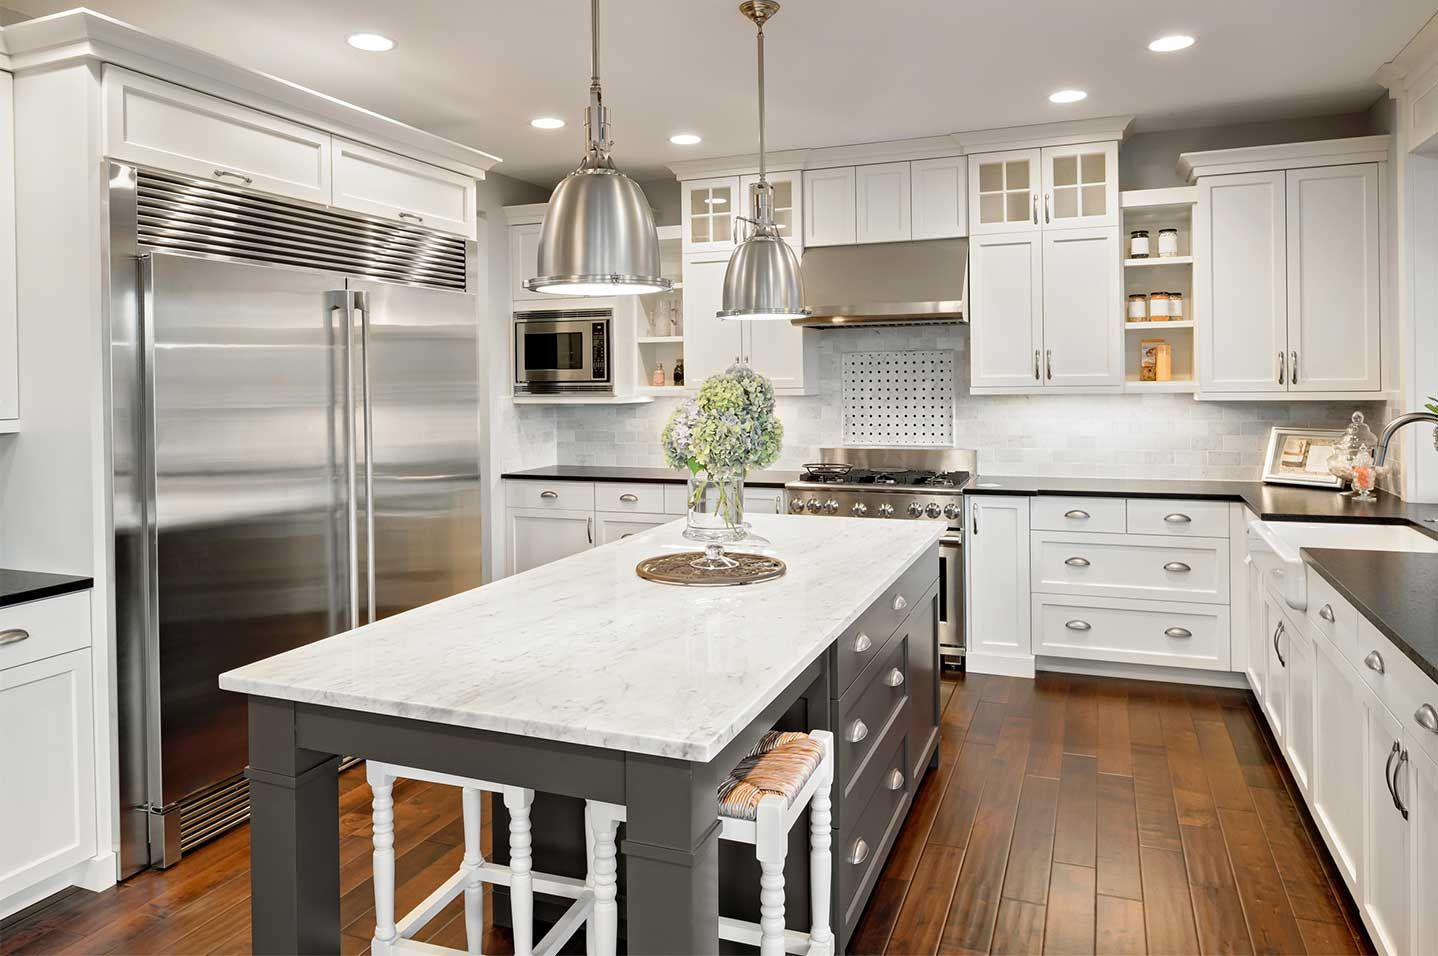 graniteselection granite countertops kitchen Check out our Projects